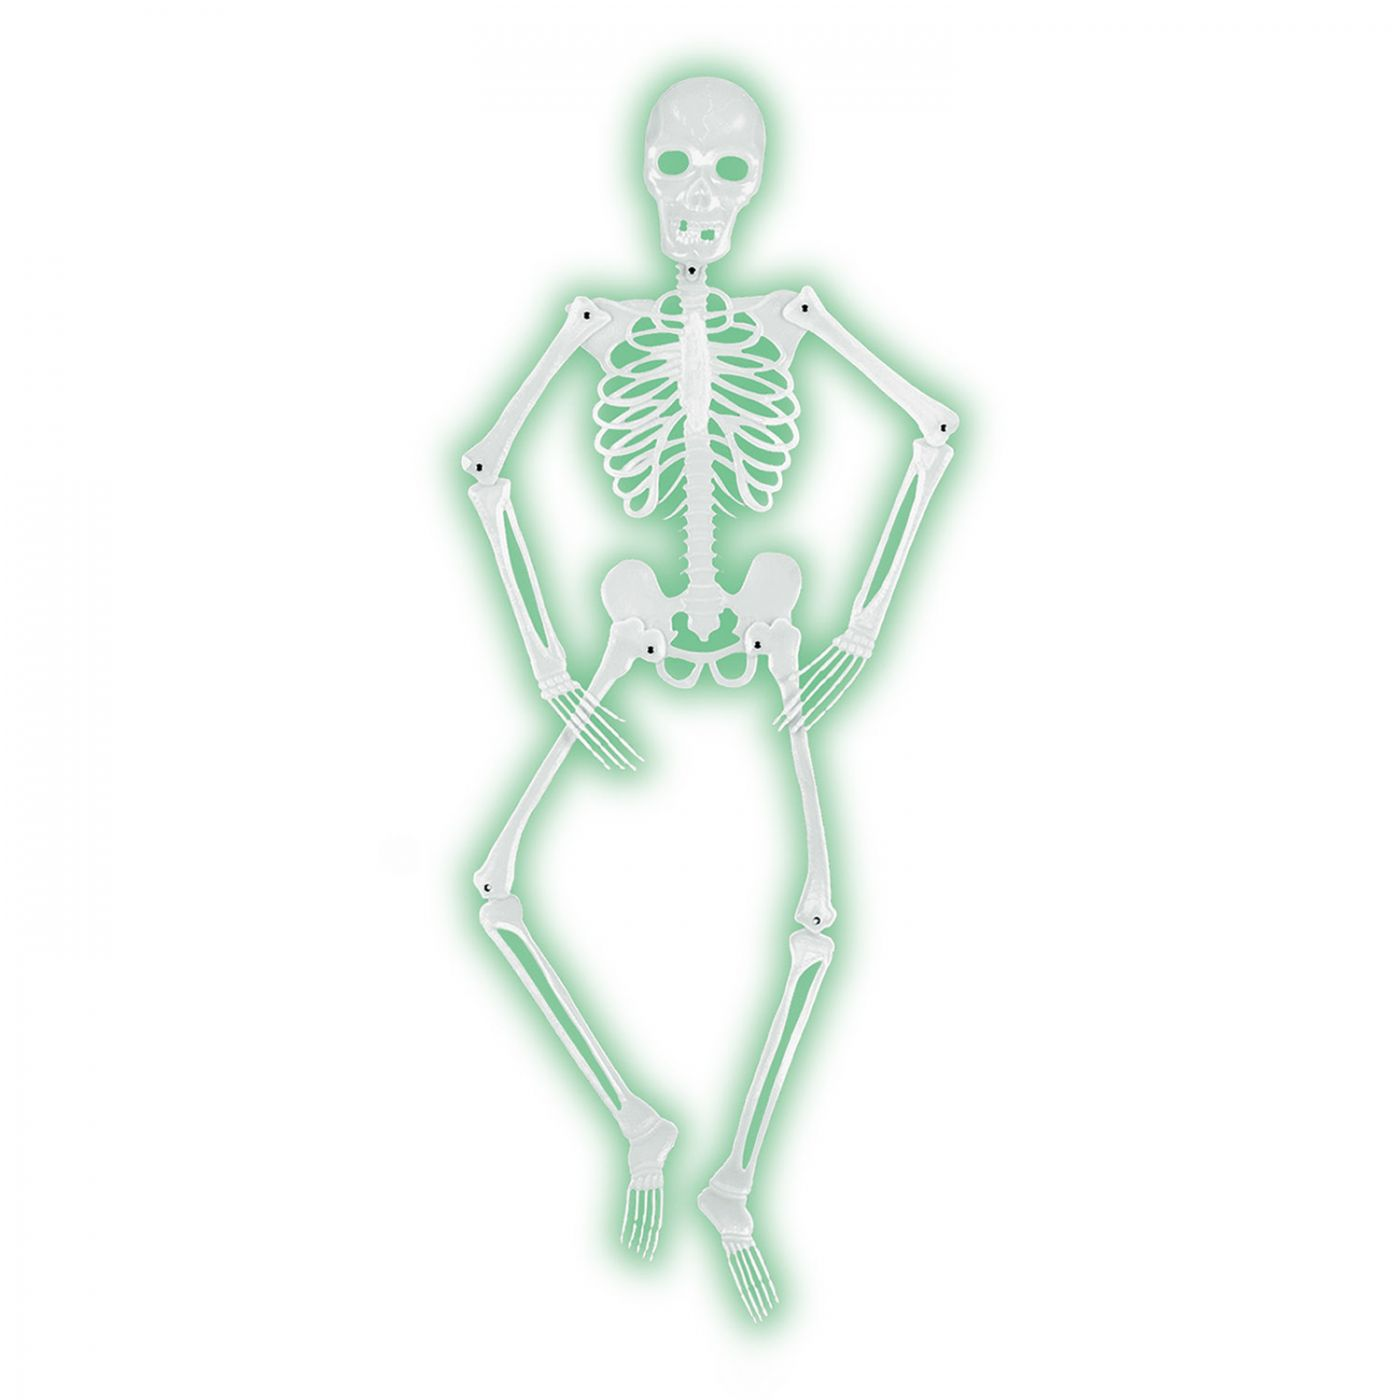 Mr Bones-A-Glo Skeleton (6) image